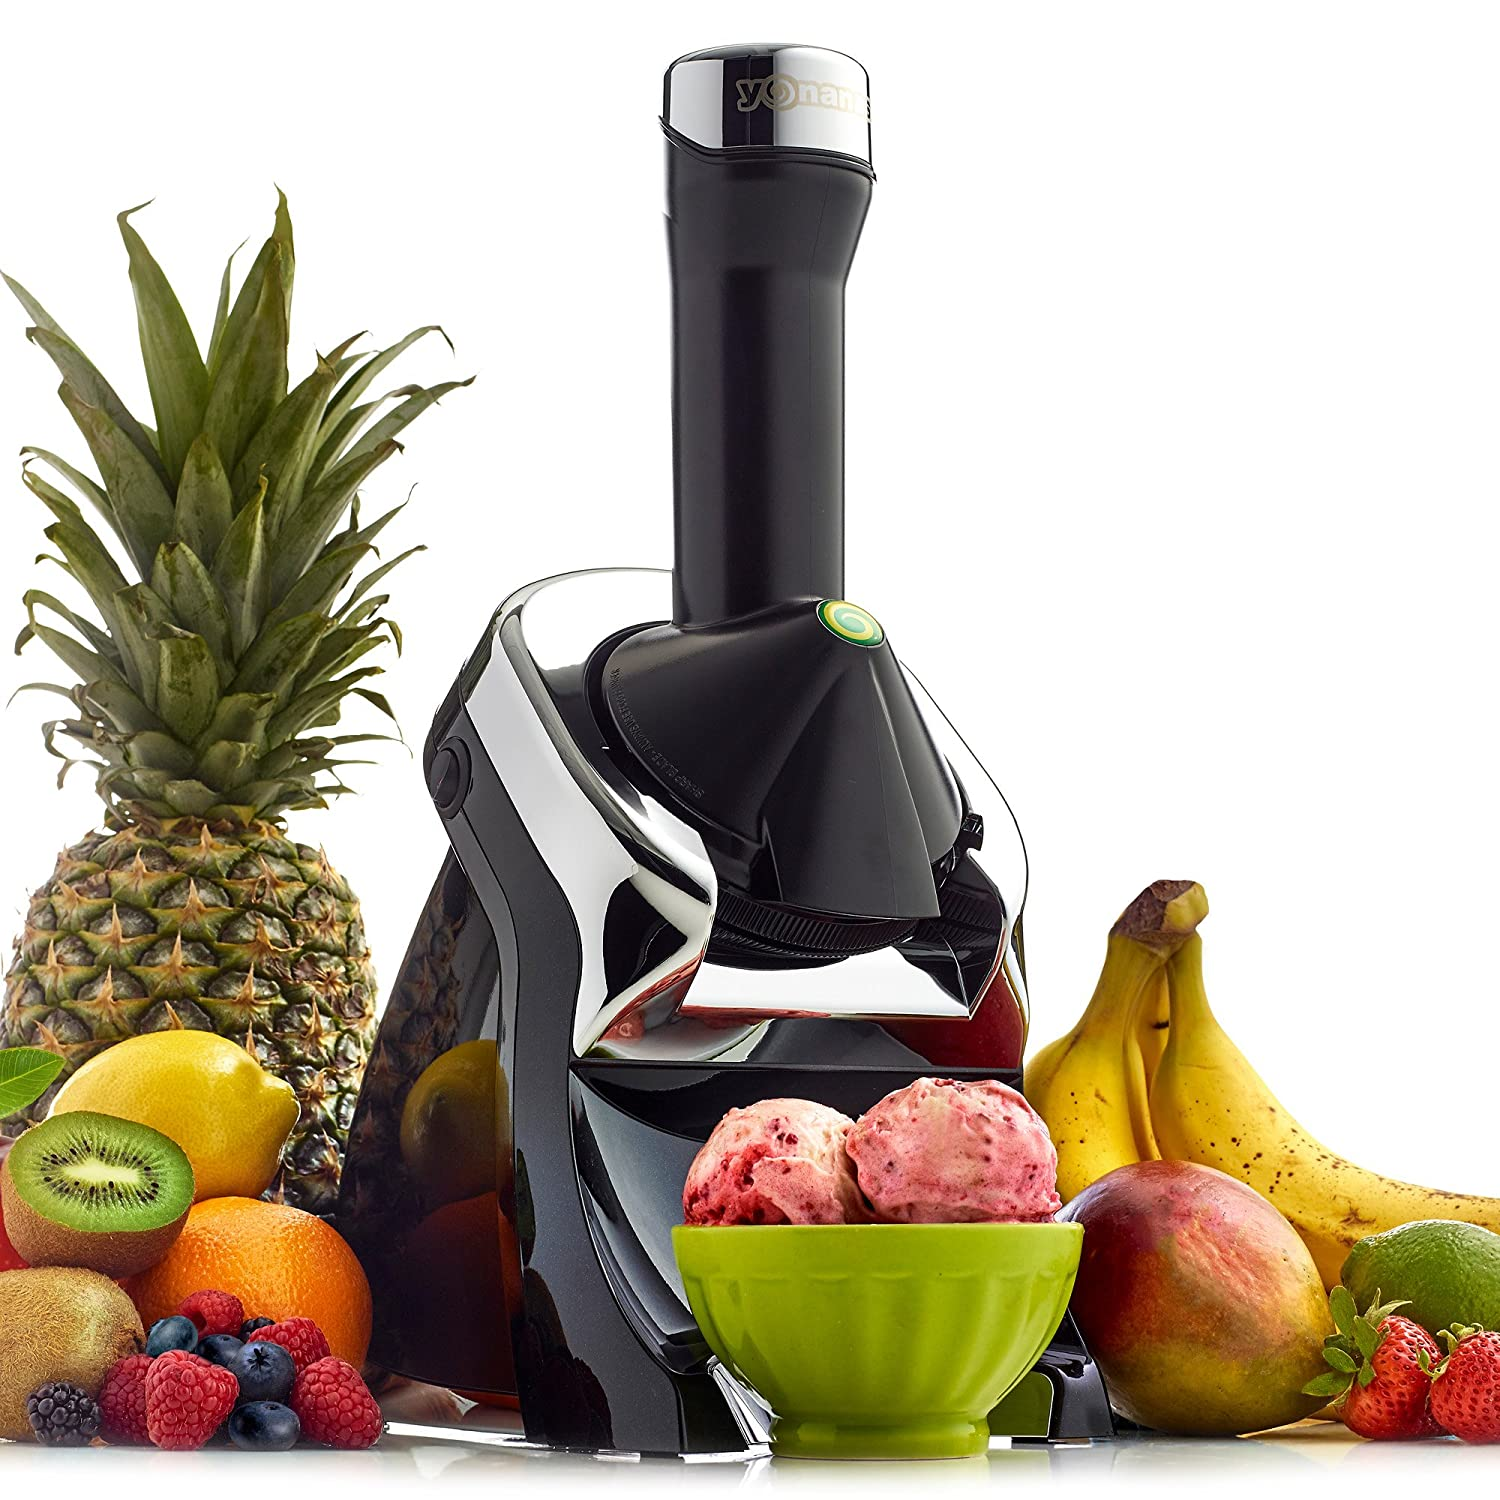 Quiet Healthy Dessert Fruit Soft Serve Maker